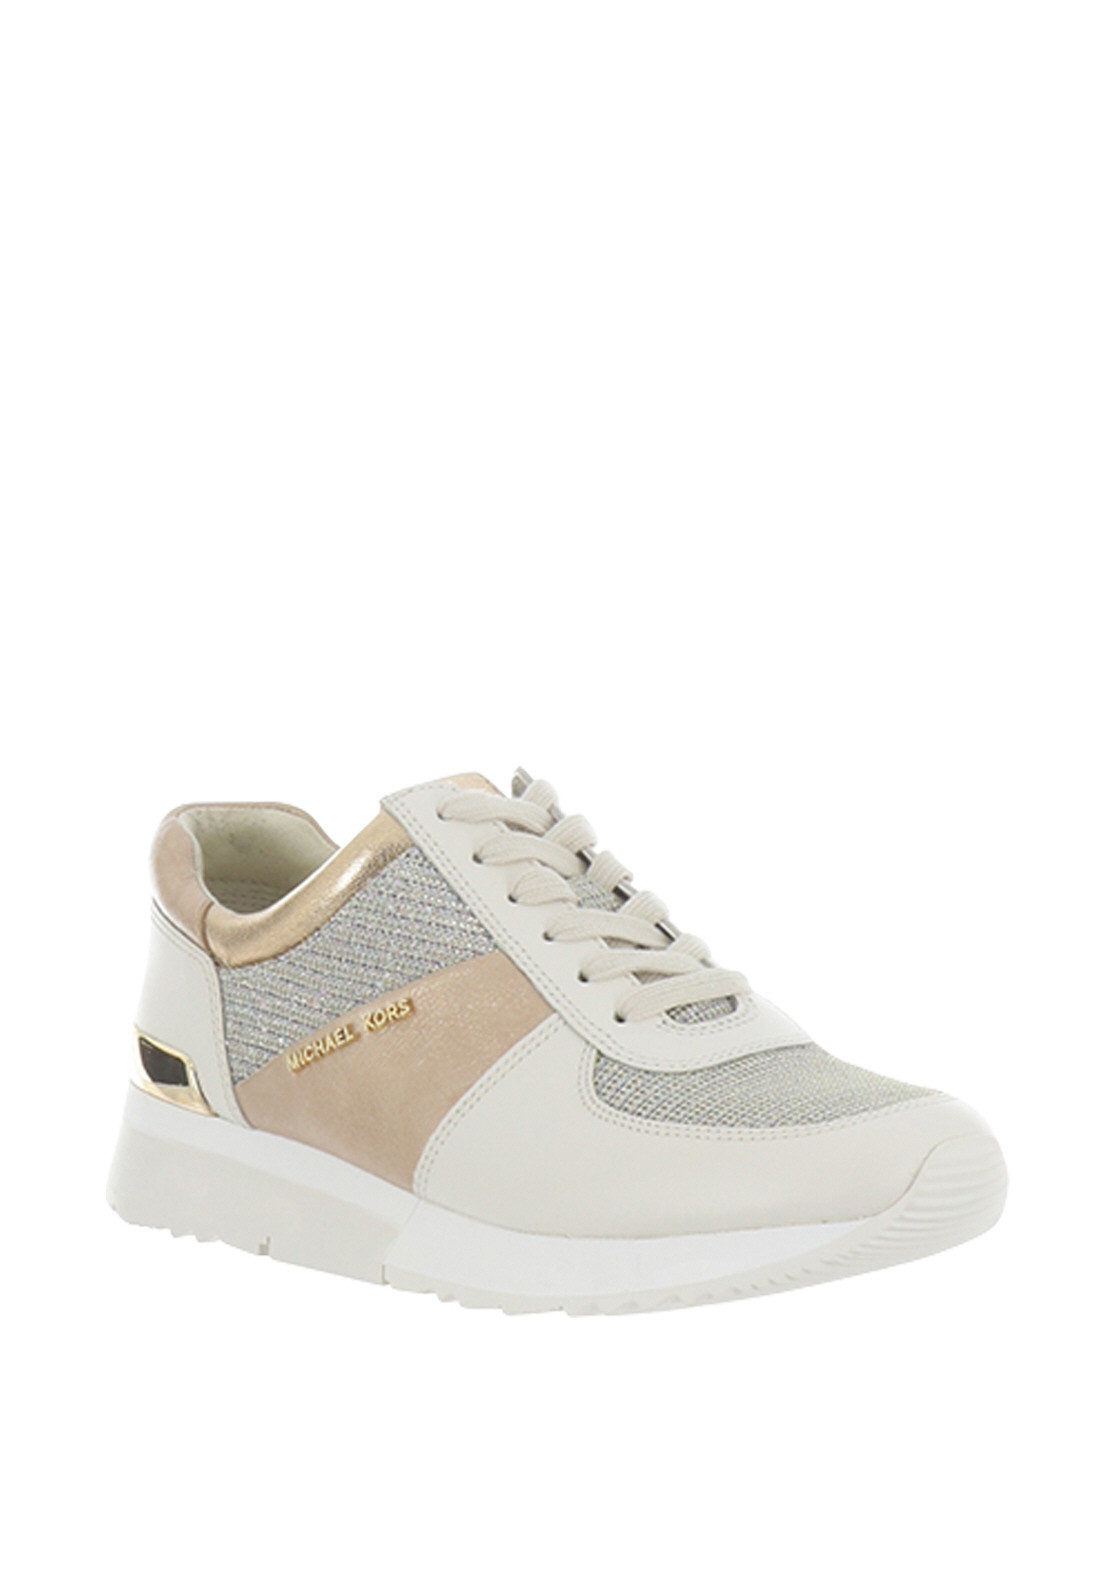 44d2d33608f55b MICHAEL Michael Kors Allie Trainers, Gold. Be the first to review this  product